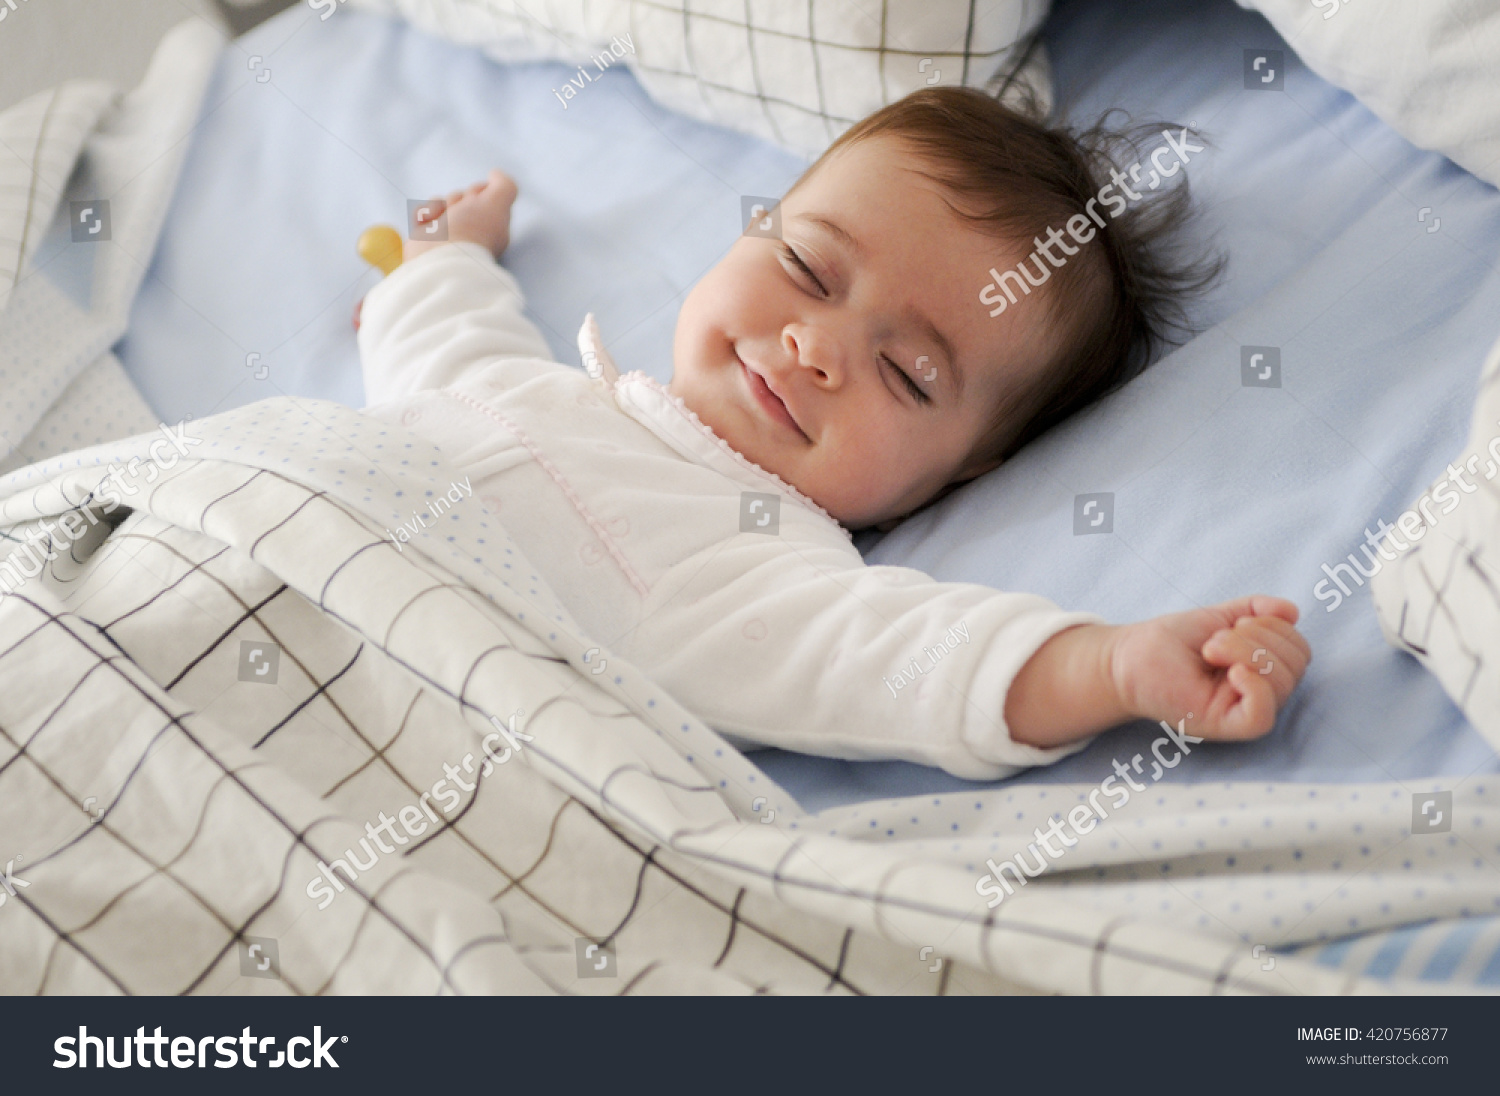 Smiling baby girl lying on a bed sleeping on blue sheets #420756877